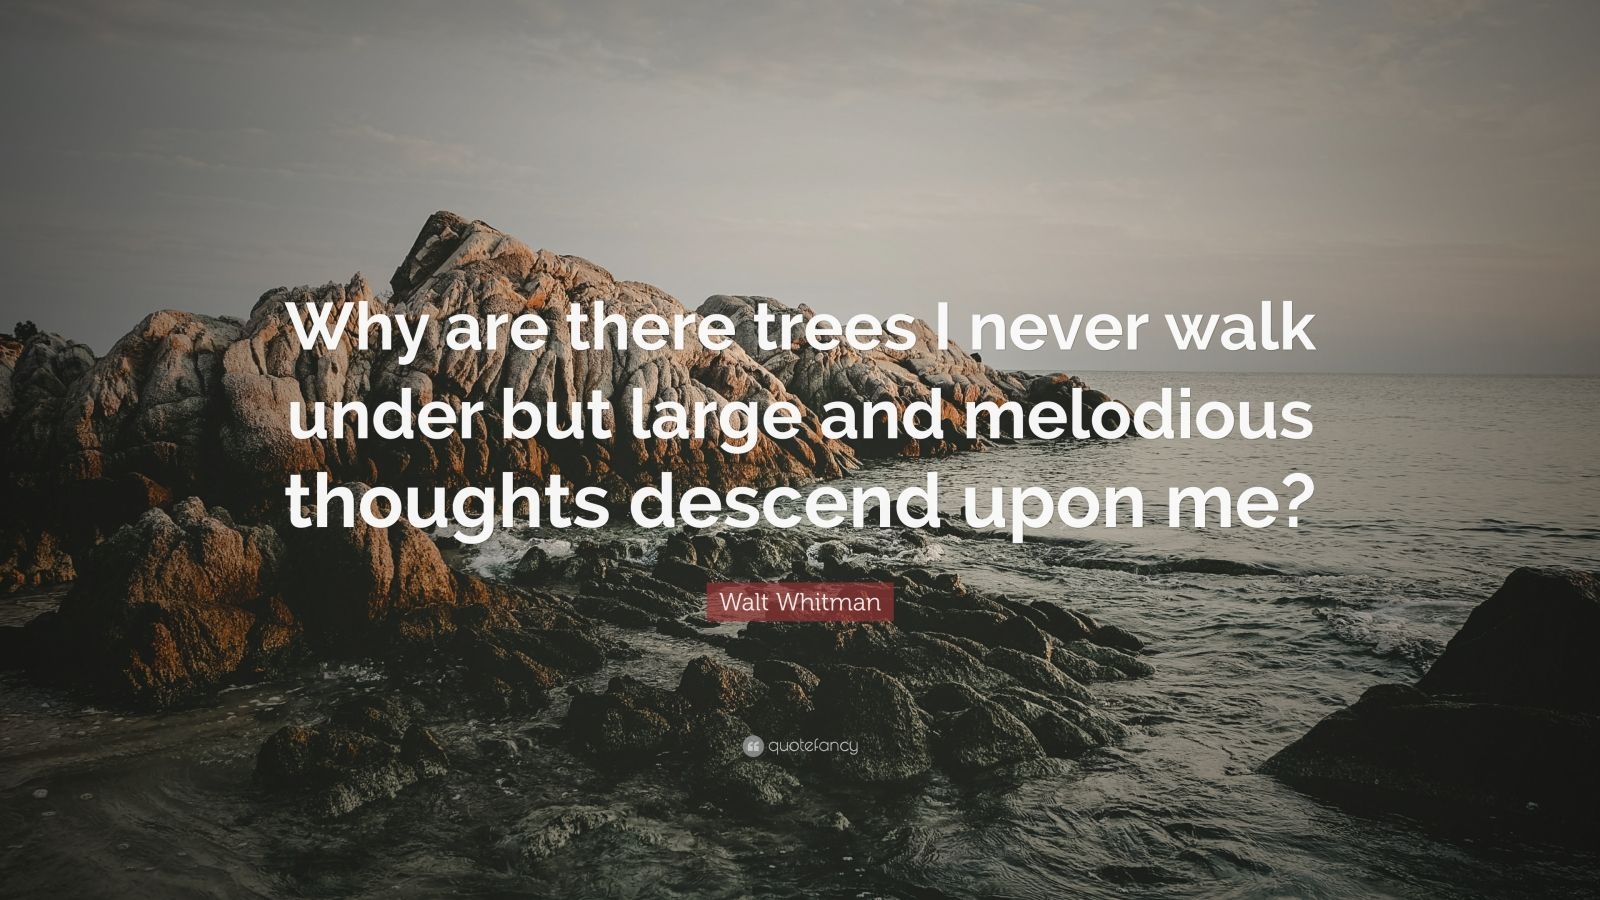 """Walt Whitman Quote: """"Why are there trees I never walk under but large and melodious thoughts descend upon me?"""""""